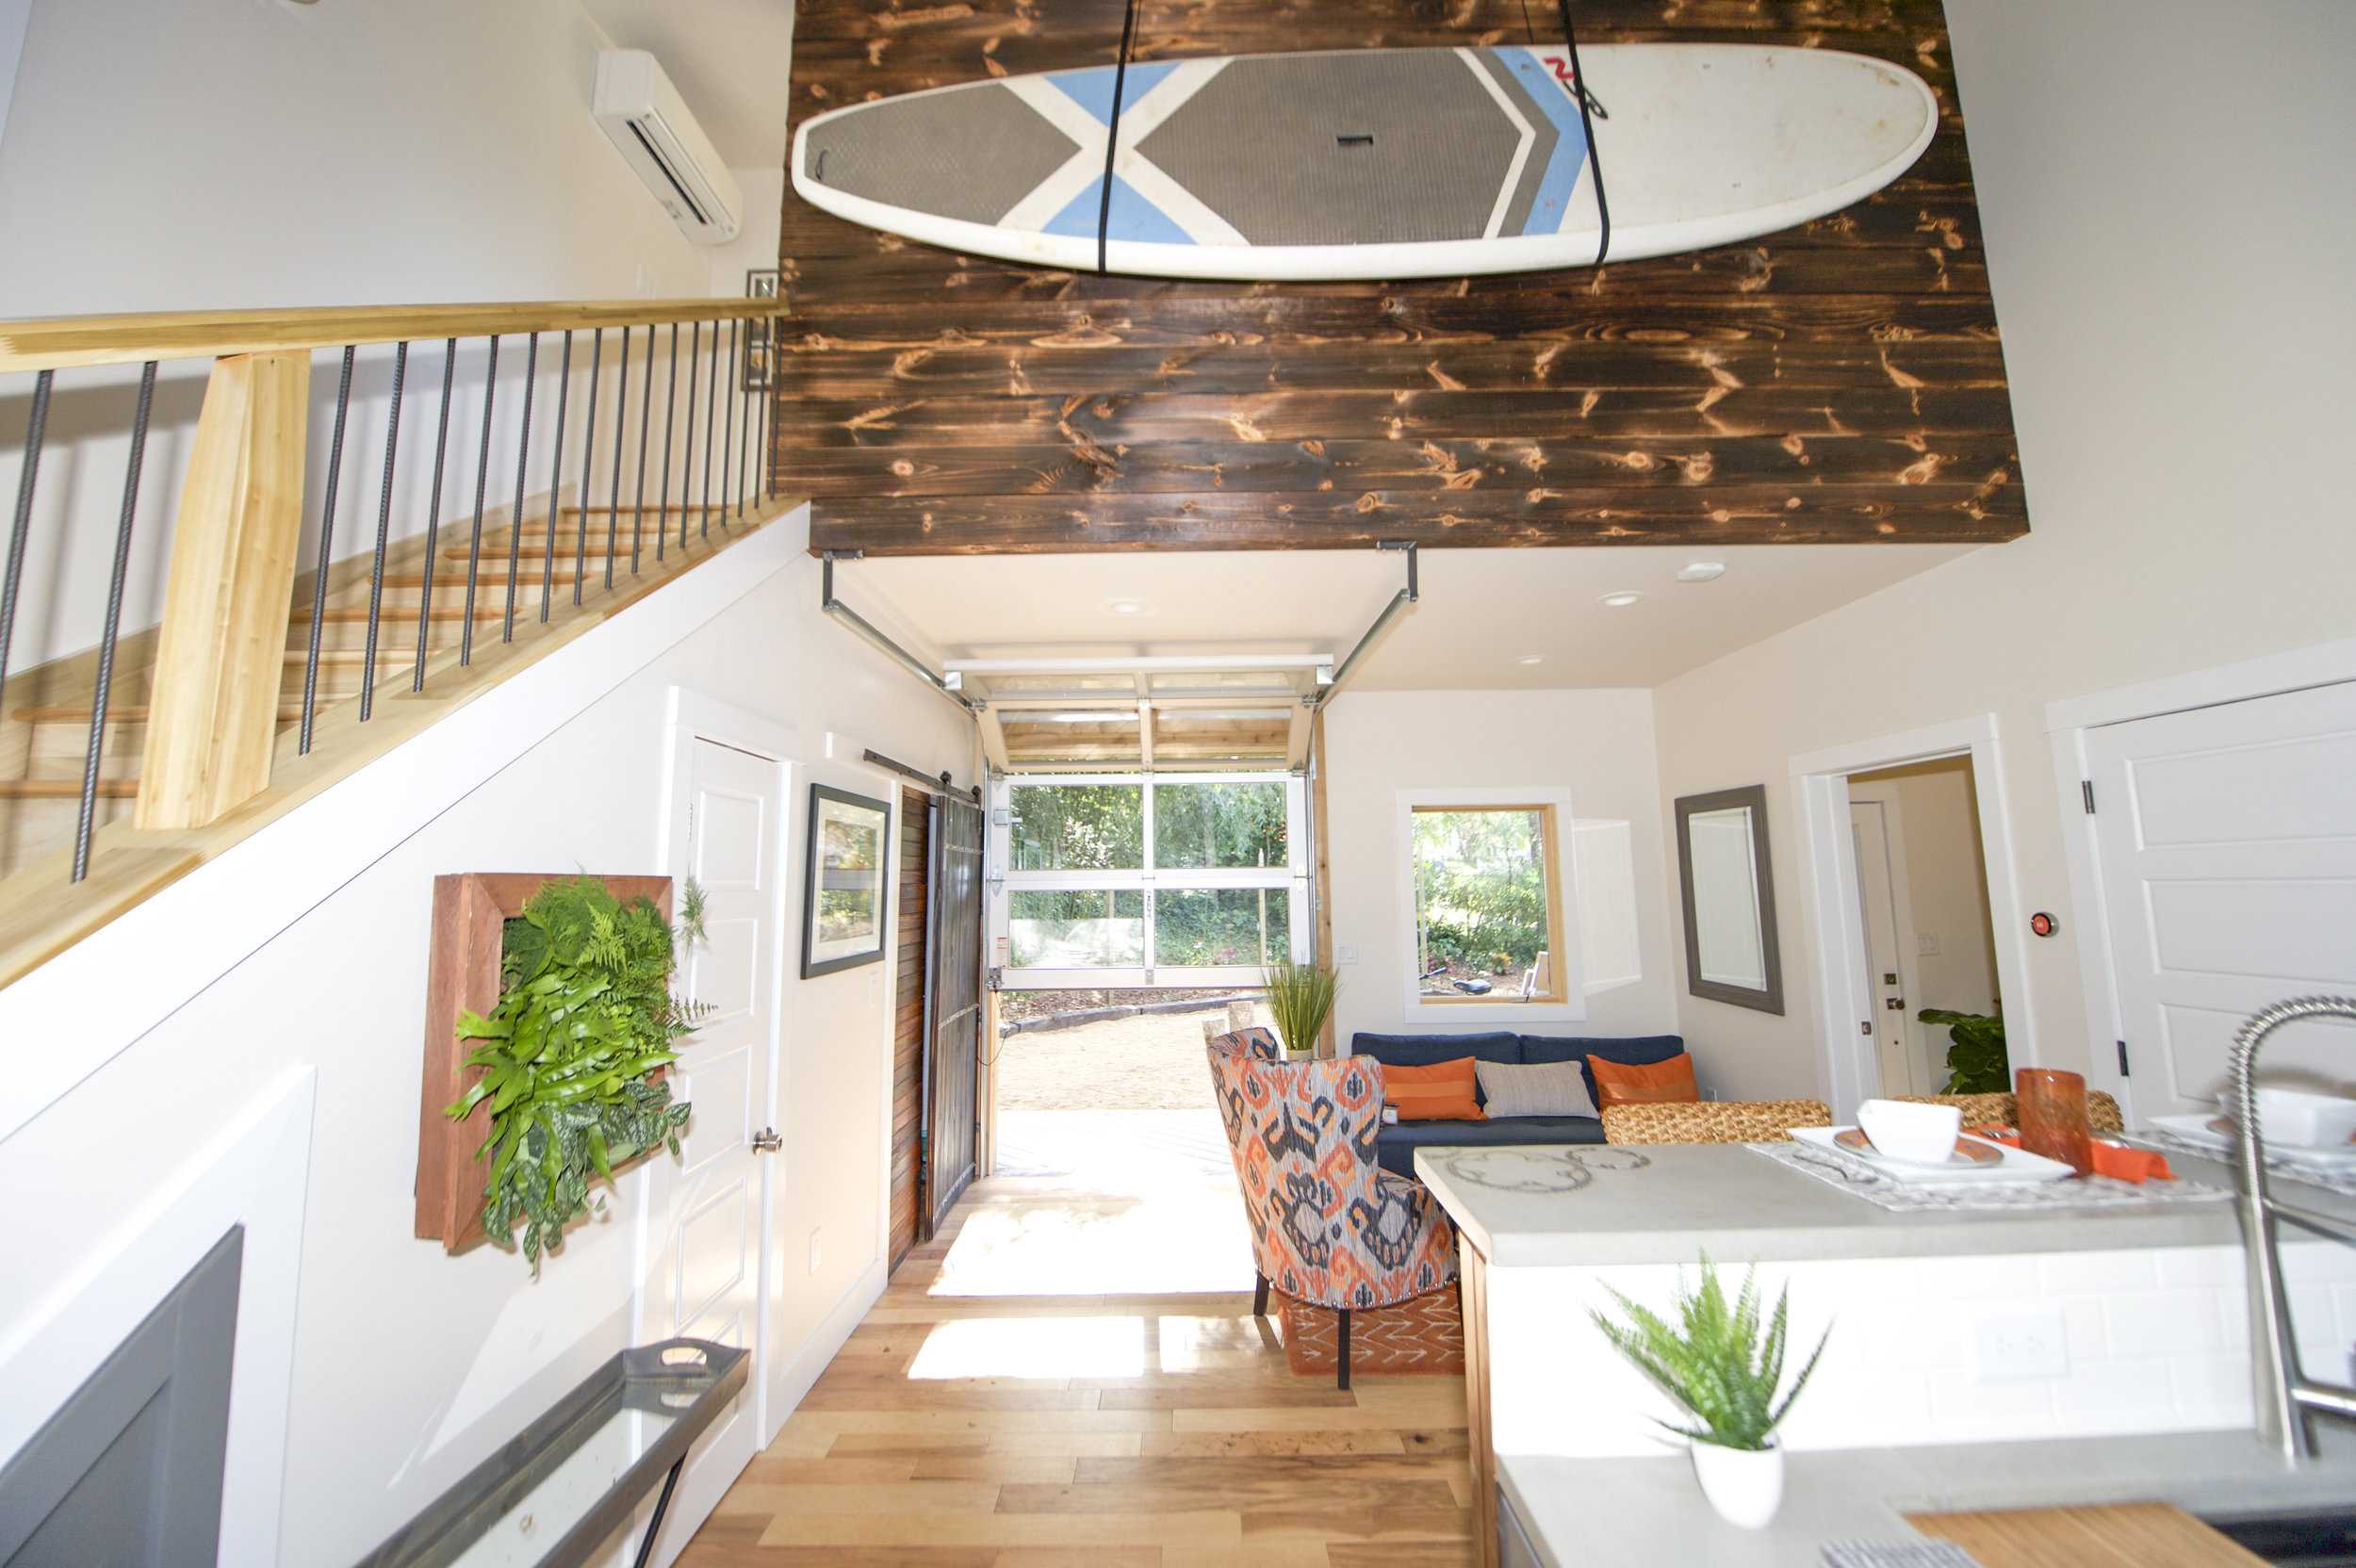 Urban Micro Home by Wind River Tiny Homes - glass garage door, stand up paddle board, rebar spindles, concrete countertops by Set In Stone, contemporary design, rustic design